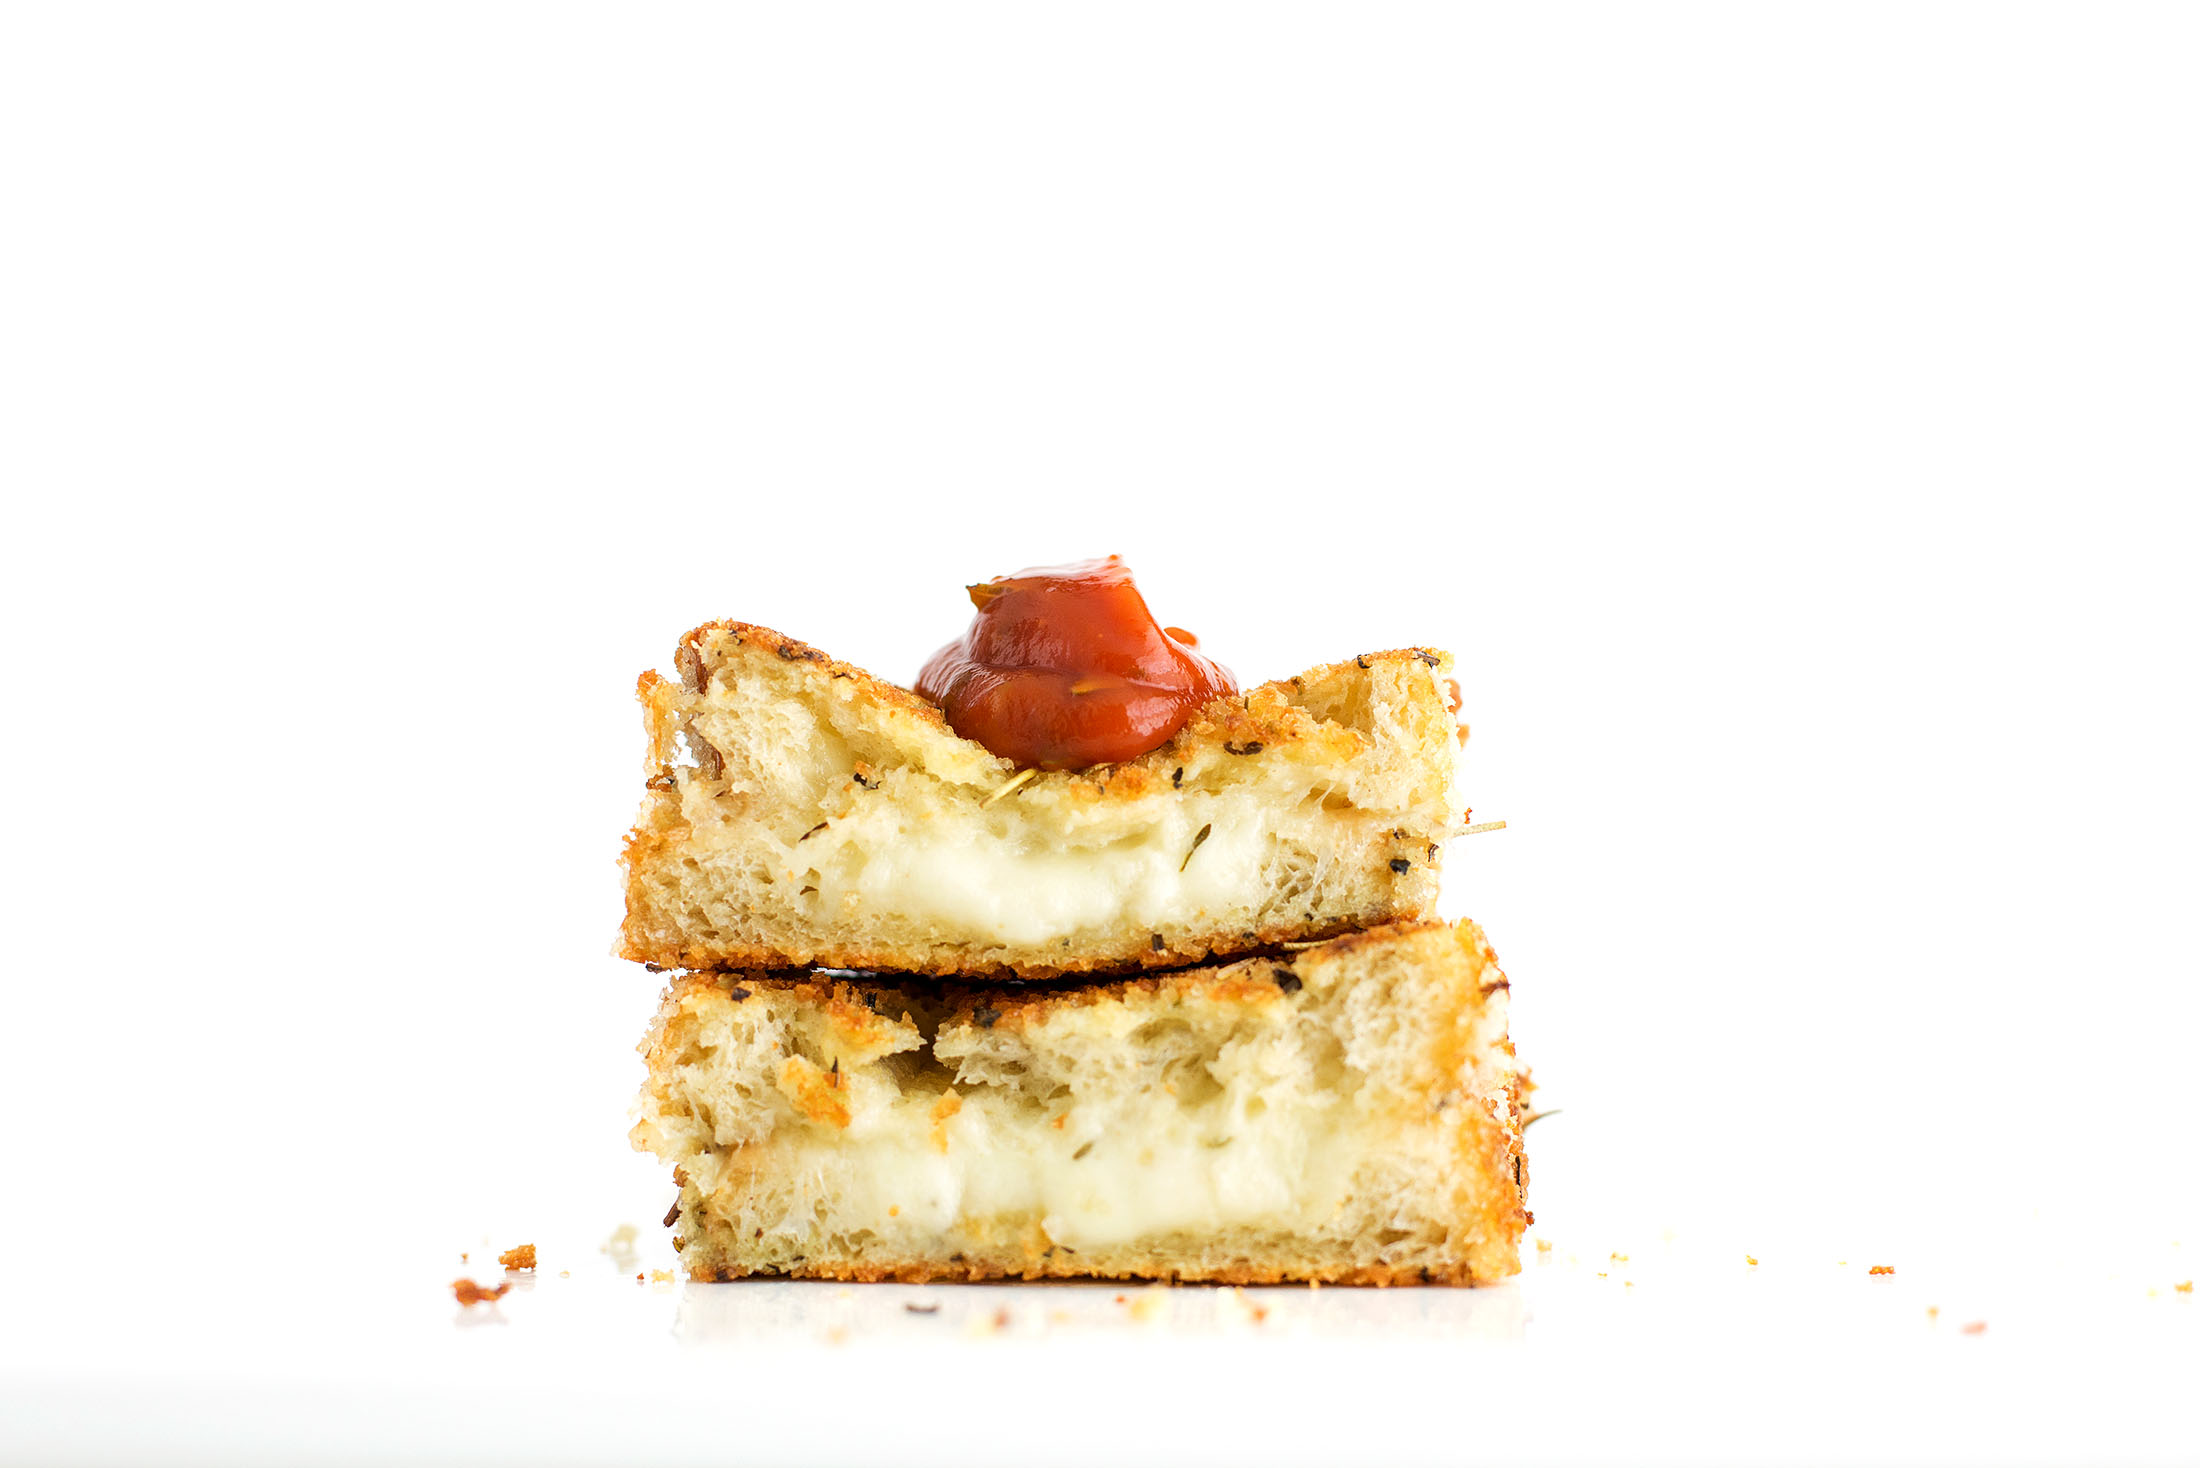 Grilled Cheese Sticks - Three Cheeses with Tomato Jam |Grilled Cheese With Mozzarella Sticks